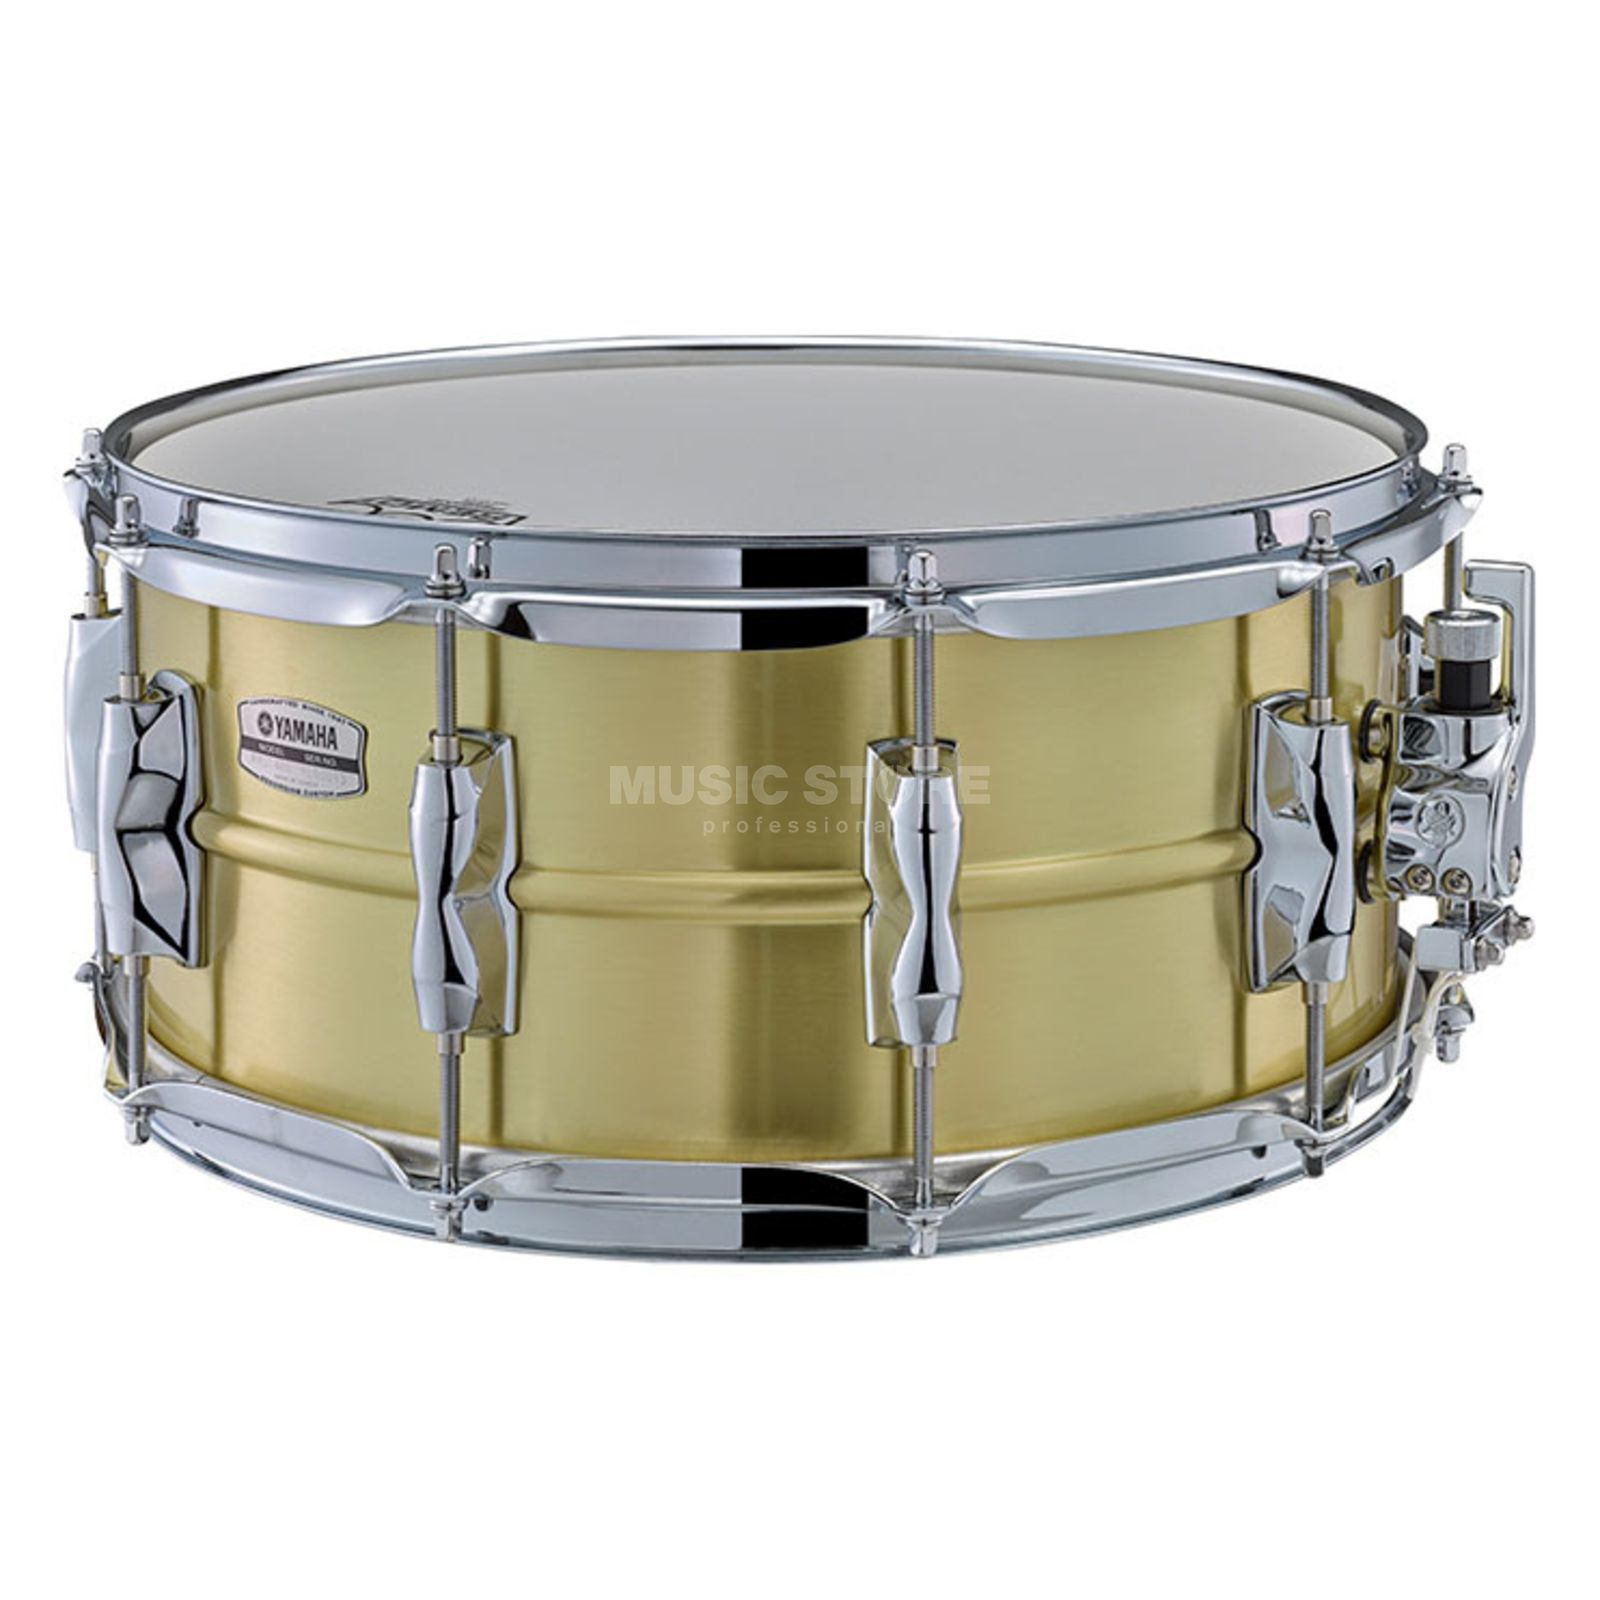 "Yamaha Recording Custom Snare 14""x6,5"", Brass Product Image"